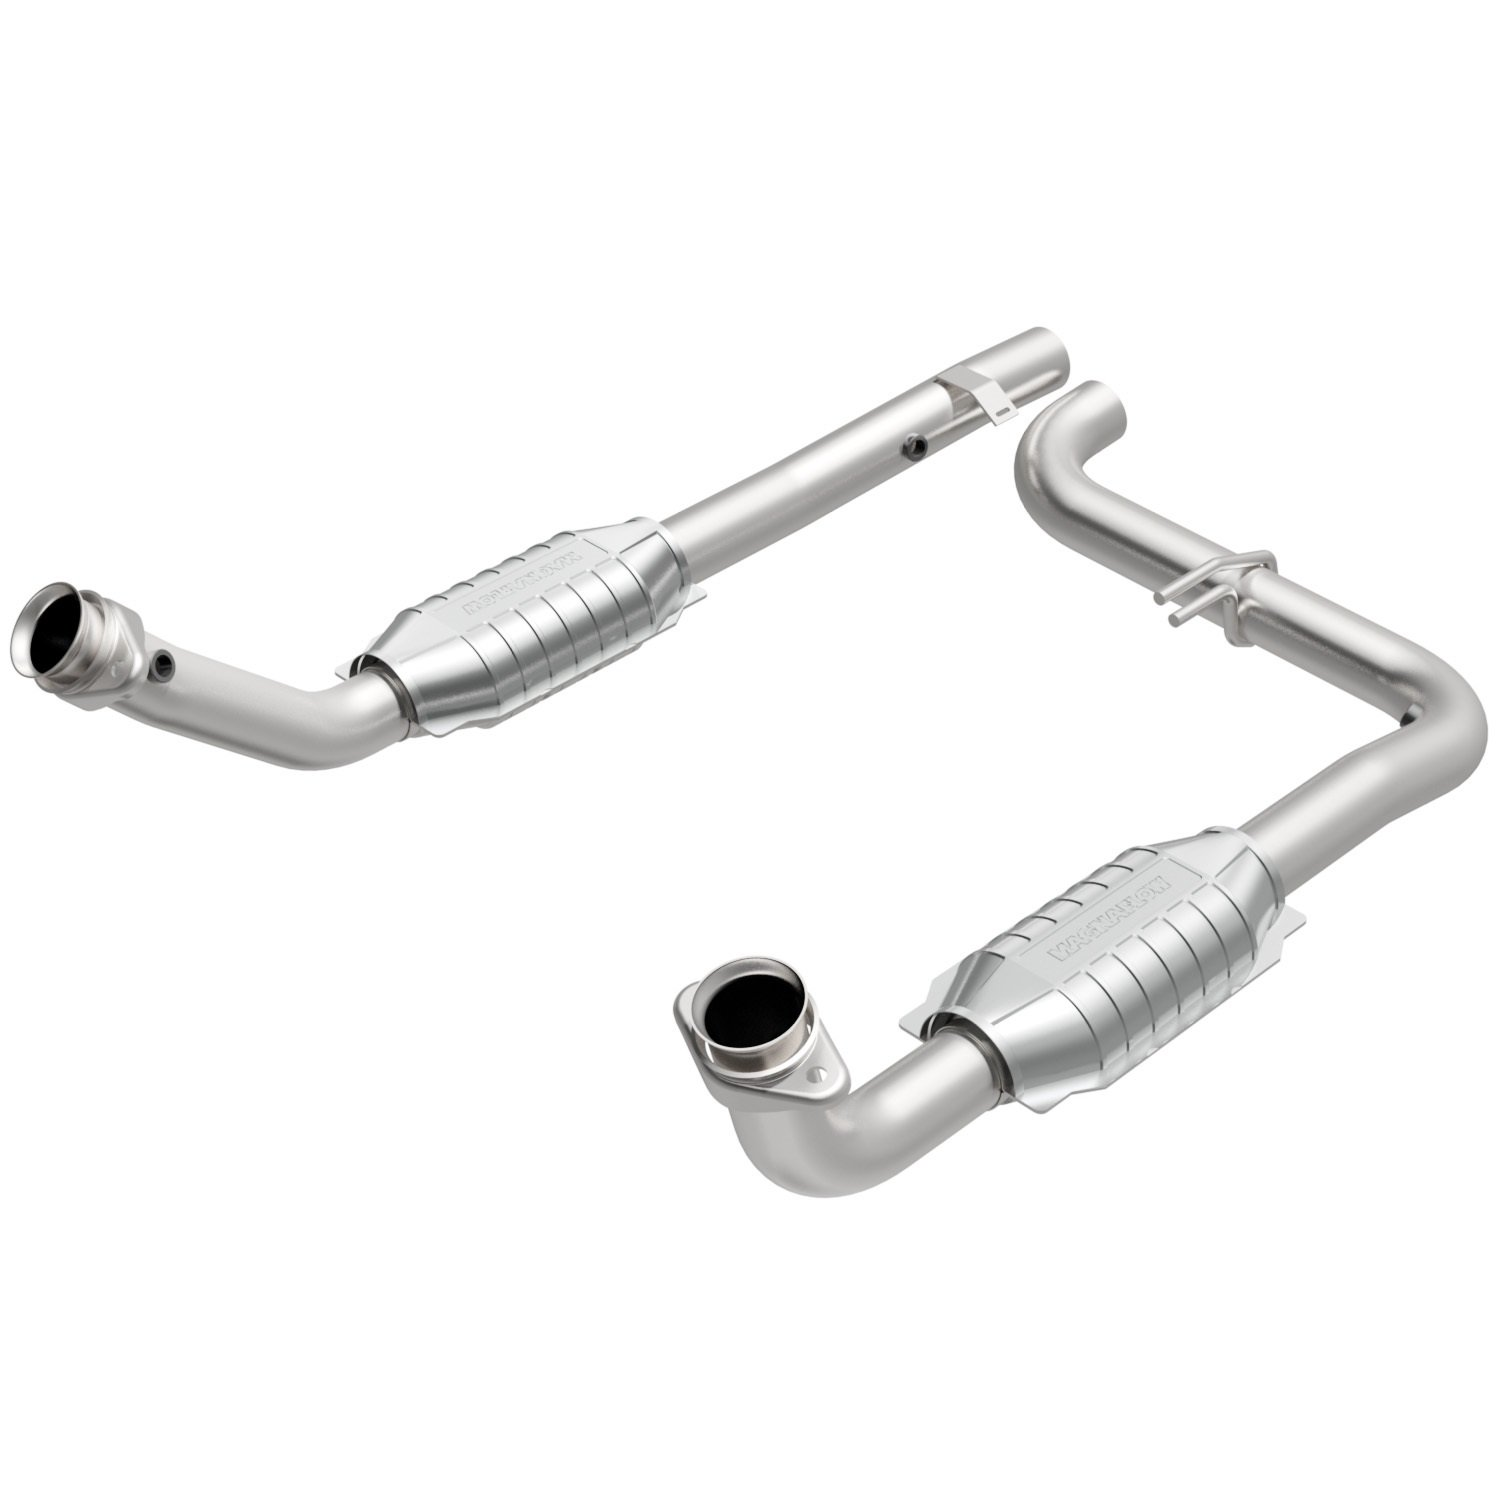 MagnaFlow 23650 Direct Fit Catalytic Converter Non CARB compliant